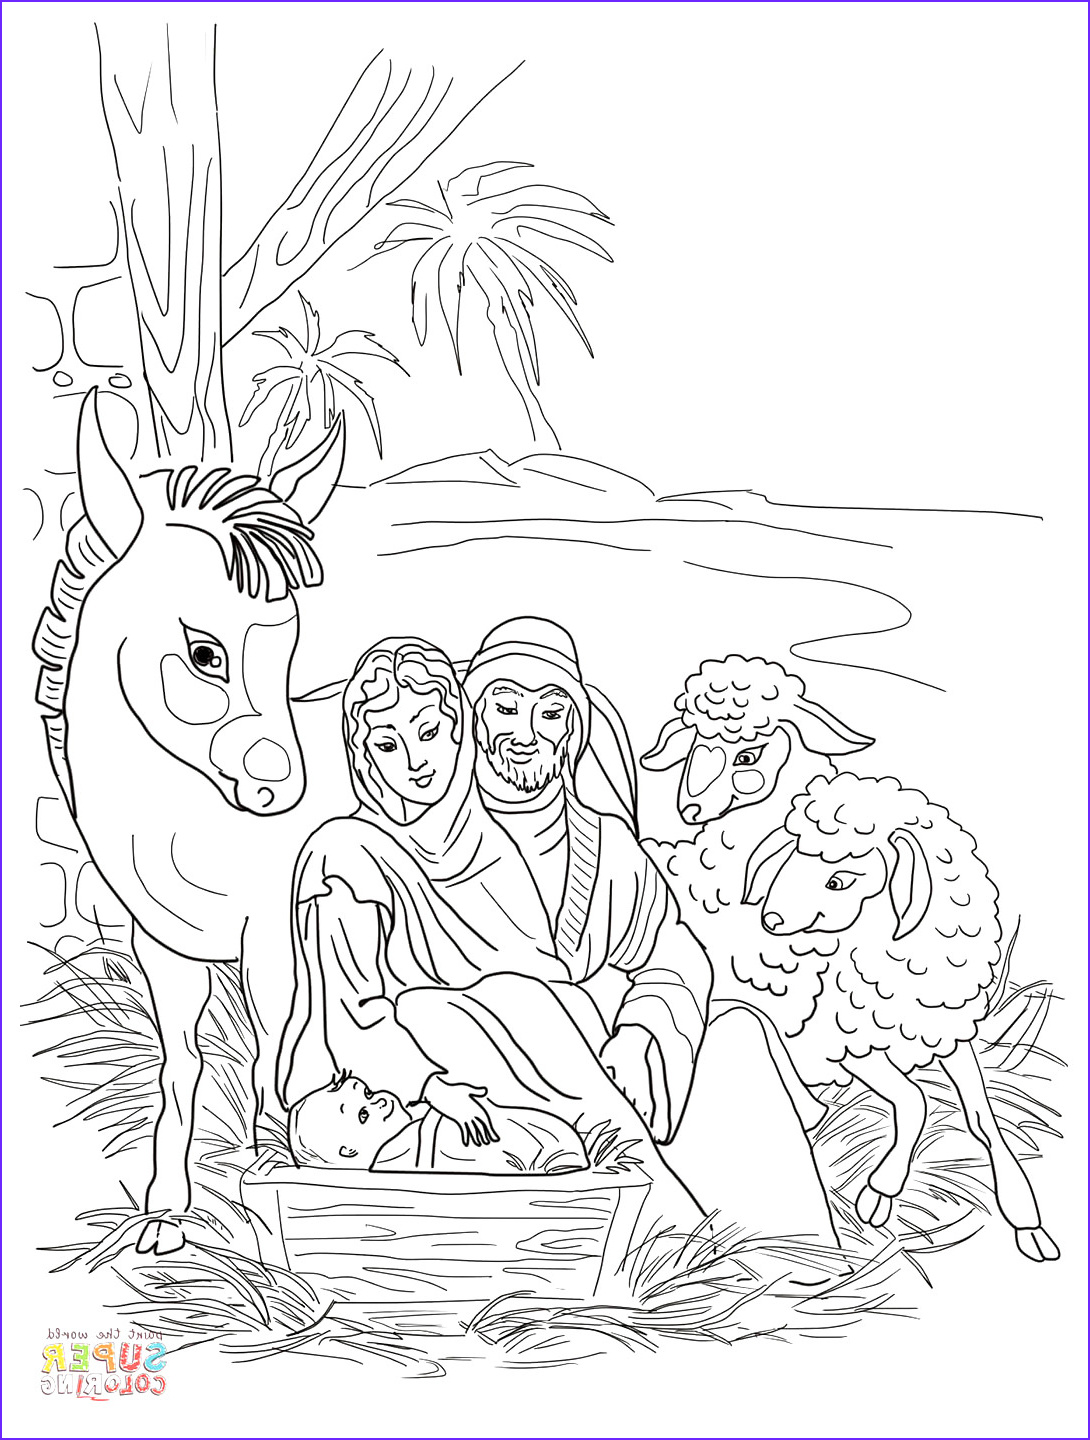 Jesus Coloring Pages Best Of Image Free Christian Coloring Pages for Children and Adults